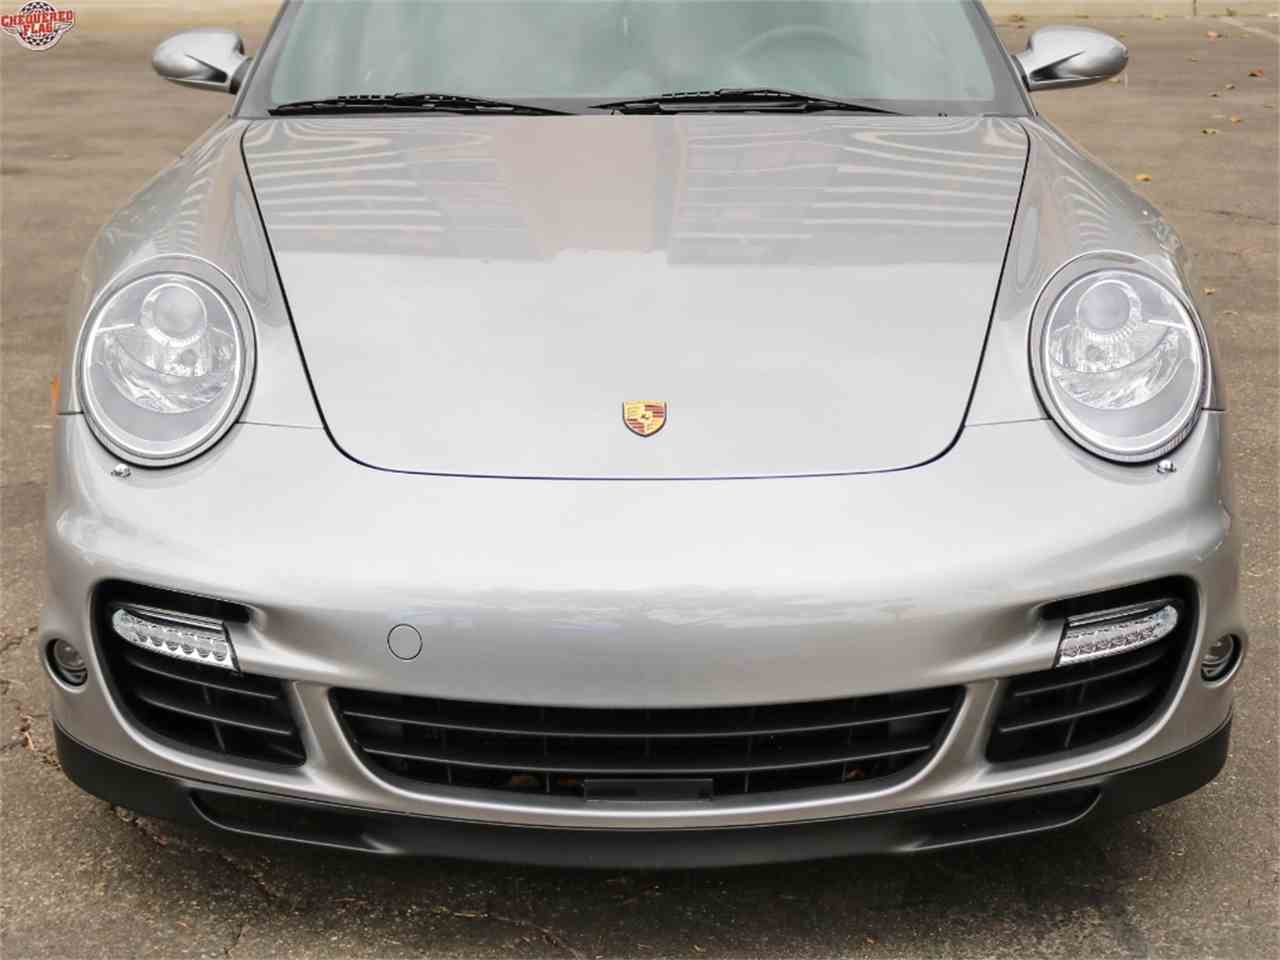 Large Picture of 2007 Porsche 911 - $112,500.00 Offered by Chequered Flag International - M8ZR